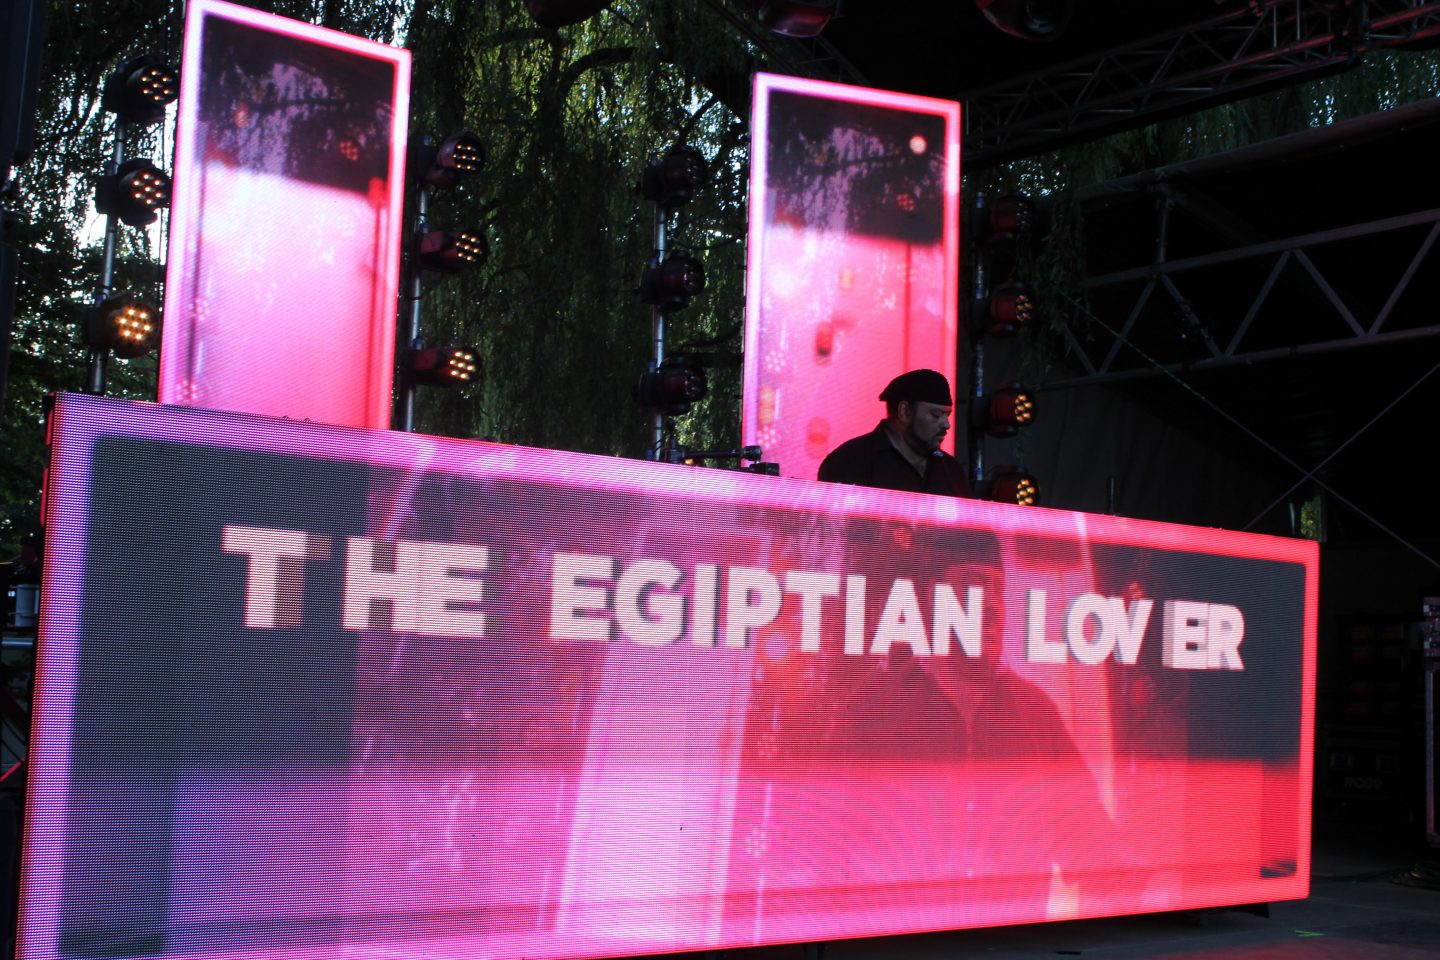 THE EGYPTIAN LOVER LIVE